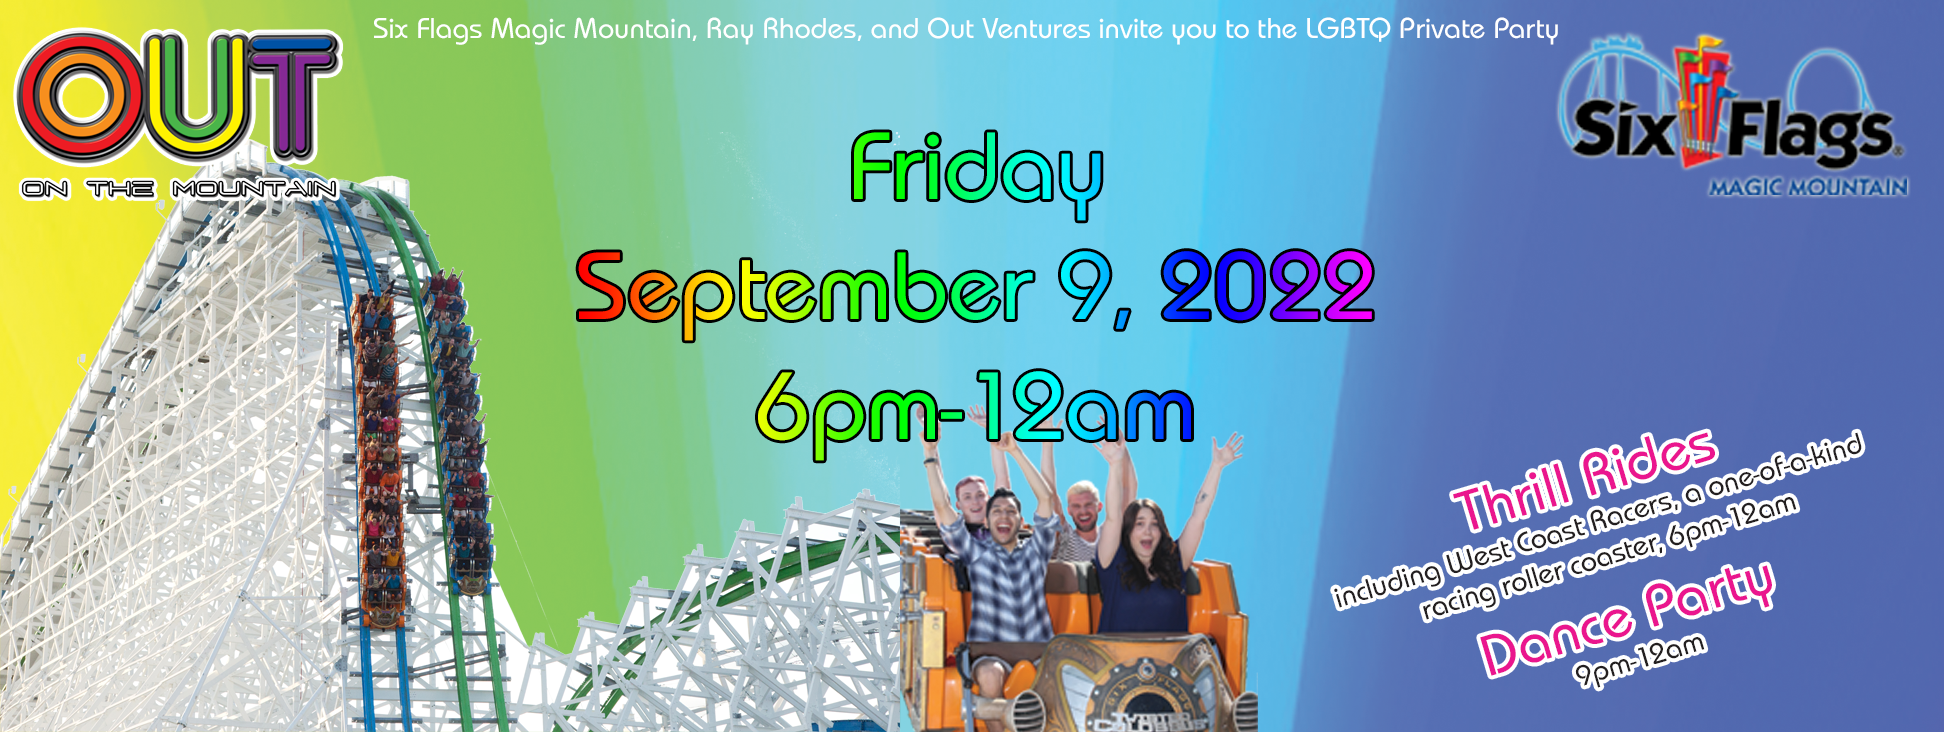 Out on the Mountain - LGBT Night at Six Flags Magic Mountain